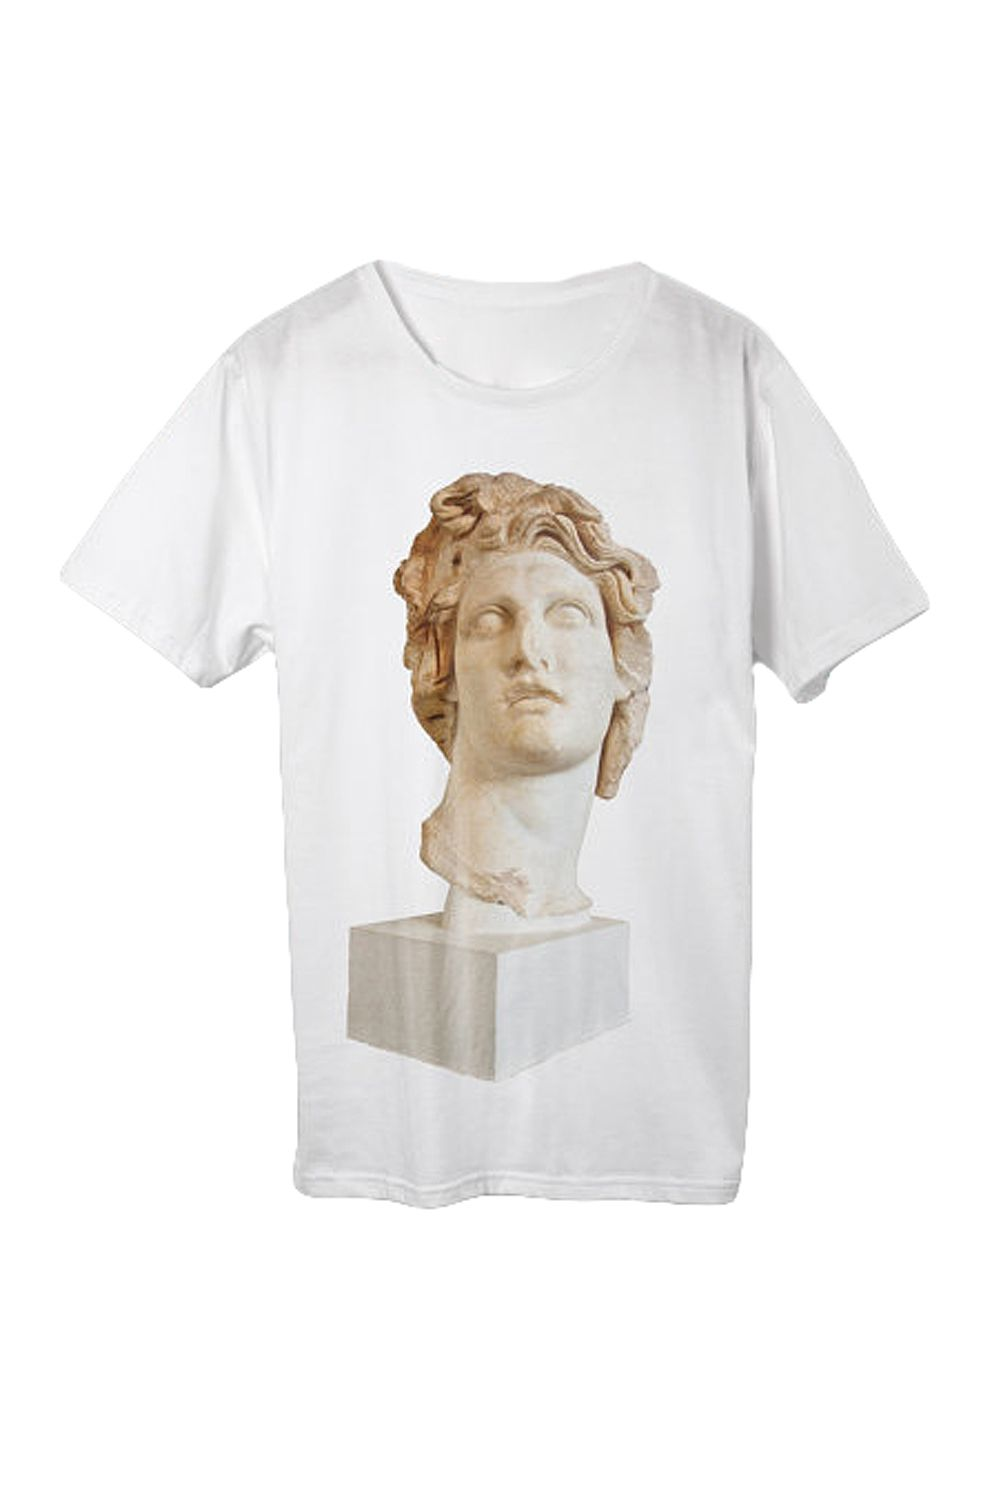 """<p>Why do busts always look like their moms have just asked them to take out the trash?&nbsp&#x3B;</p><p><em data-redactor-tag=""""em"""" data-verified=""""redactor"""">CapitalFam, $20</em></p><p><strong data-redactor-tag=""""strong"""" data-verified=""""redactor"""">BUY IT:&nbsp&#x3B;</strong><span class=""""redactor-invisible-space"""" data-verified=""""redactor"""" data-redactor-tag=""""span"""" data-redactor-class=""""redactor-invisible-space""""><strong data-redactor-tag=""""strong"""" data-verified=""""redactor""""><a href=""""https://www.etsy.com/listing/504724881/helios-greek-bust-shirt-a-e-s-t-h-e-t-i"""" target=""""_blank"""" data-tracking-id=""""recirc-text-link"""">etsy.com</a>.</strong></span></p>"""